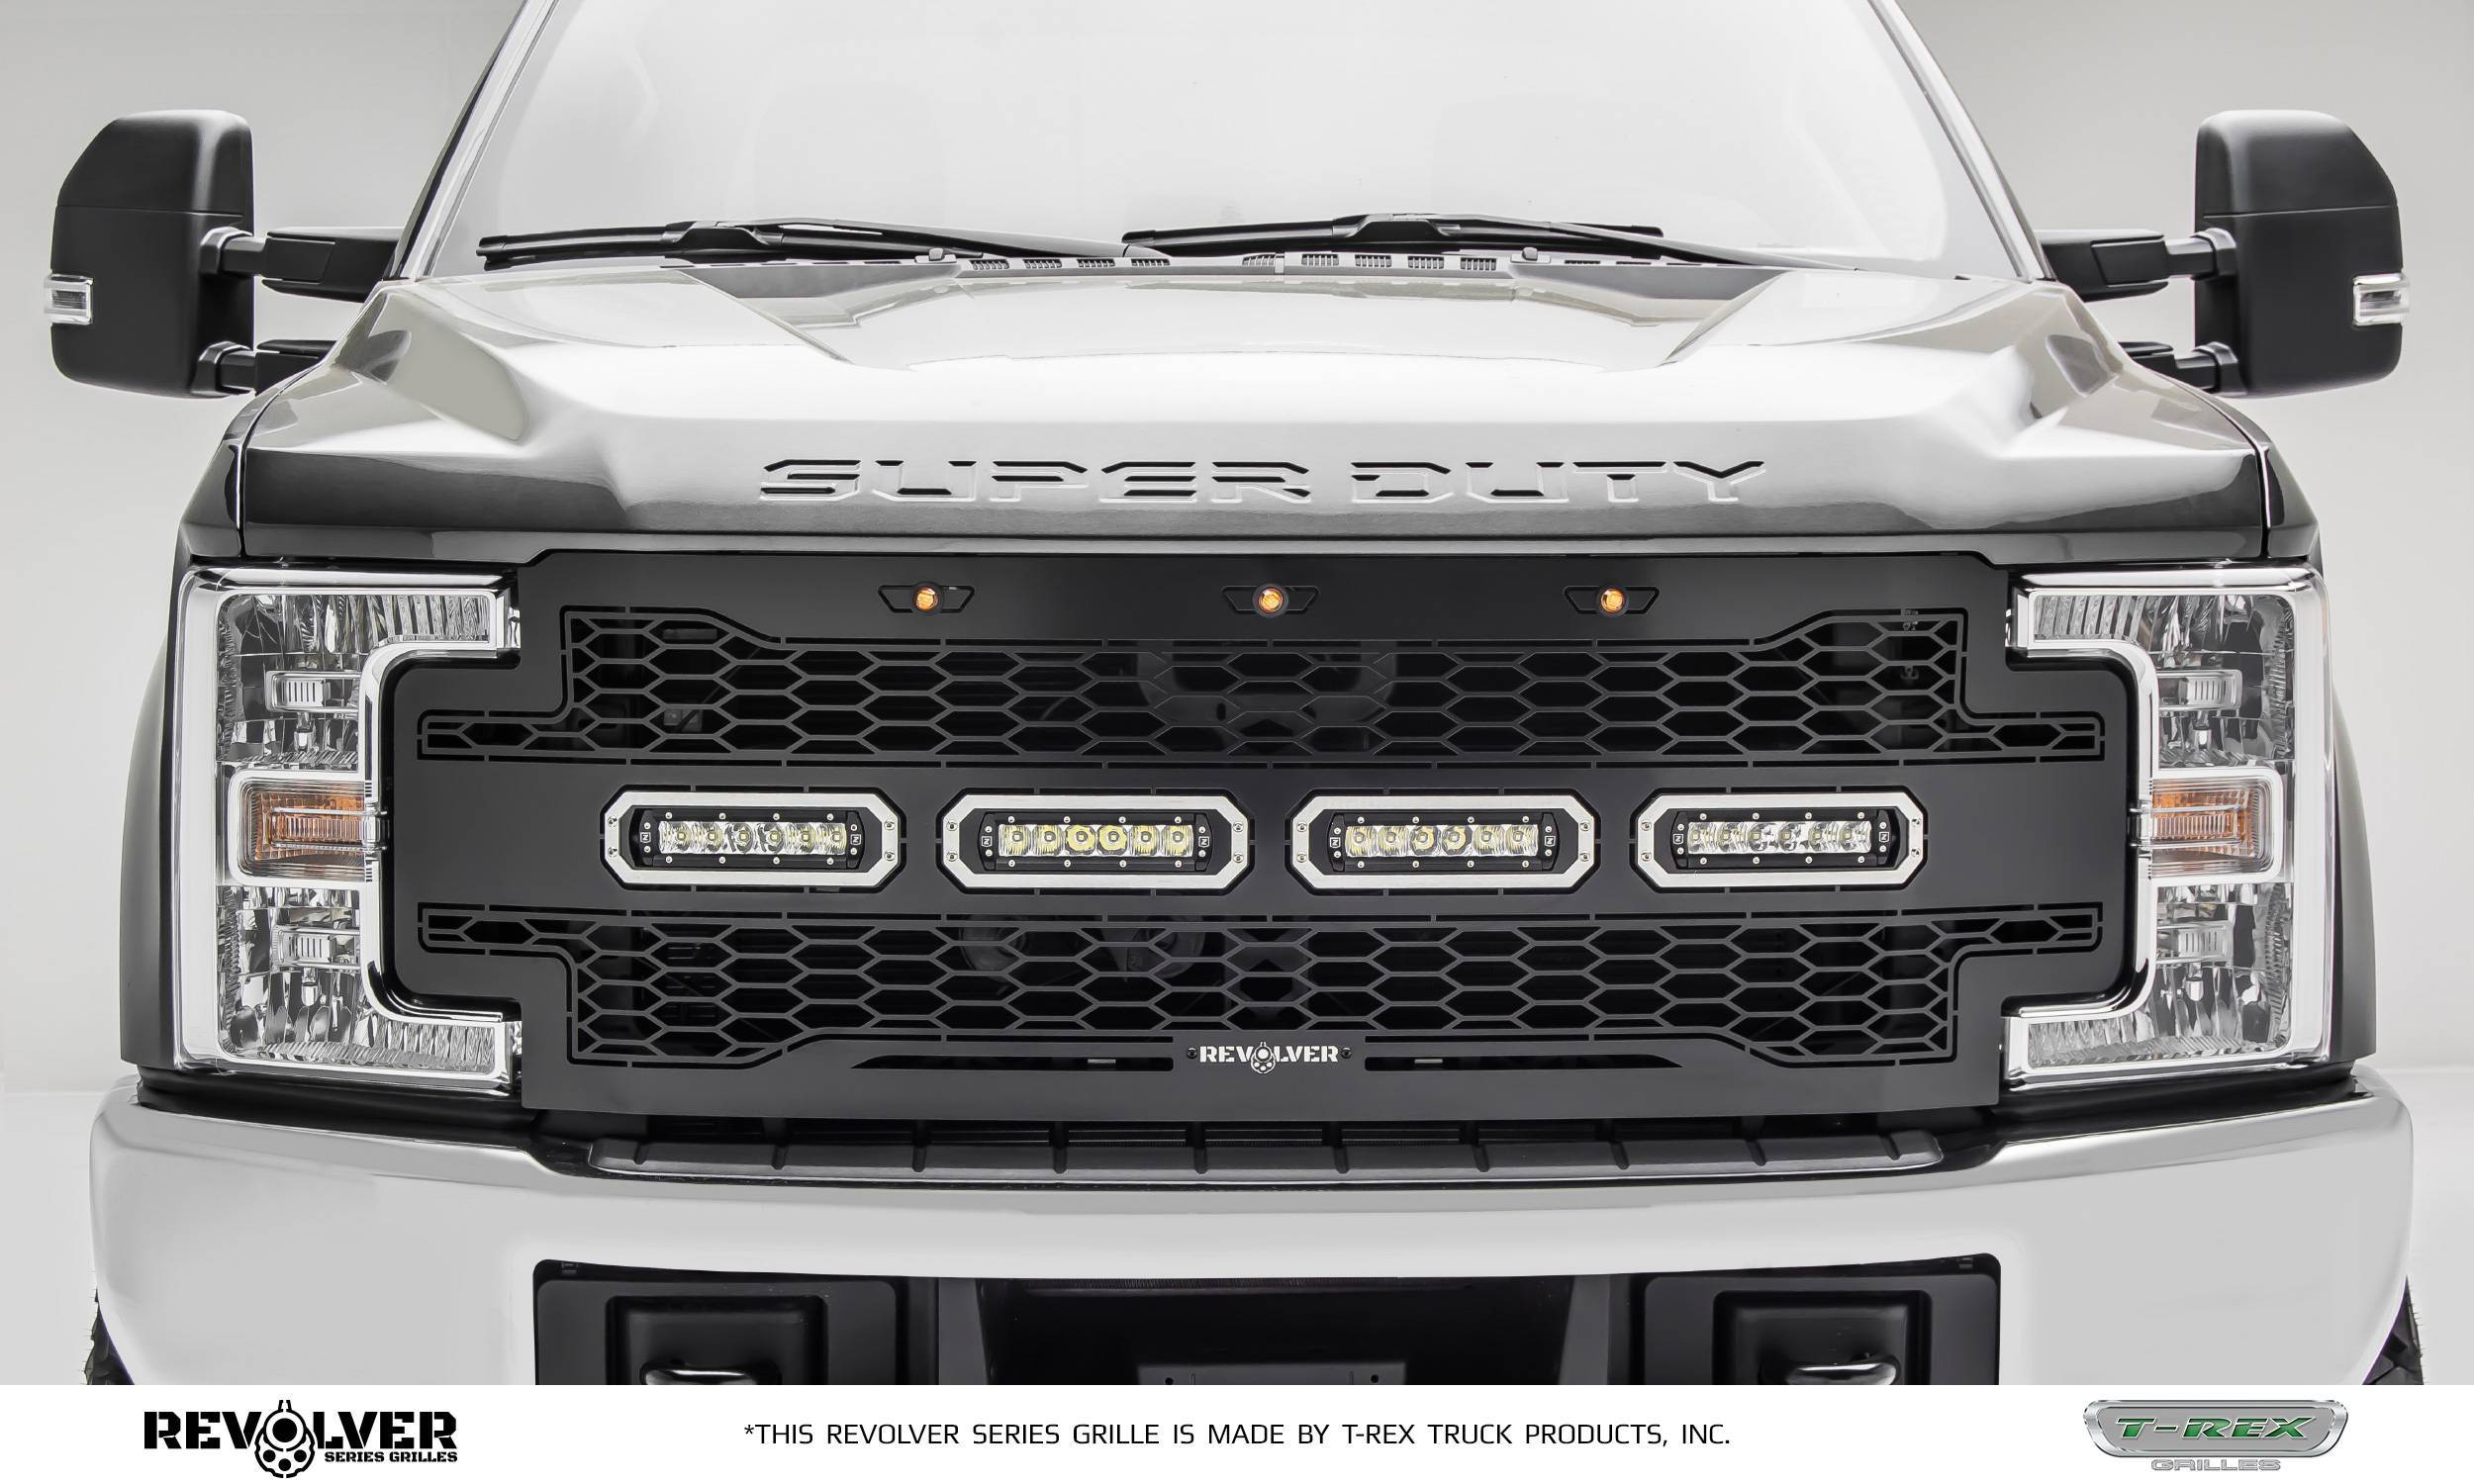 """T-REX Grilles - 2017-2019 Super Duty Revolver Grille, Black, 1 Pc, Replacement with (4) 6"""" LEDs, Does Not Fit Vehicles with Camera - PN #6515641"""